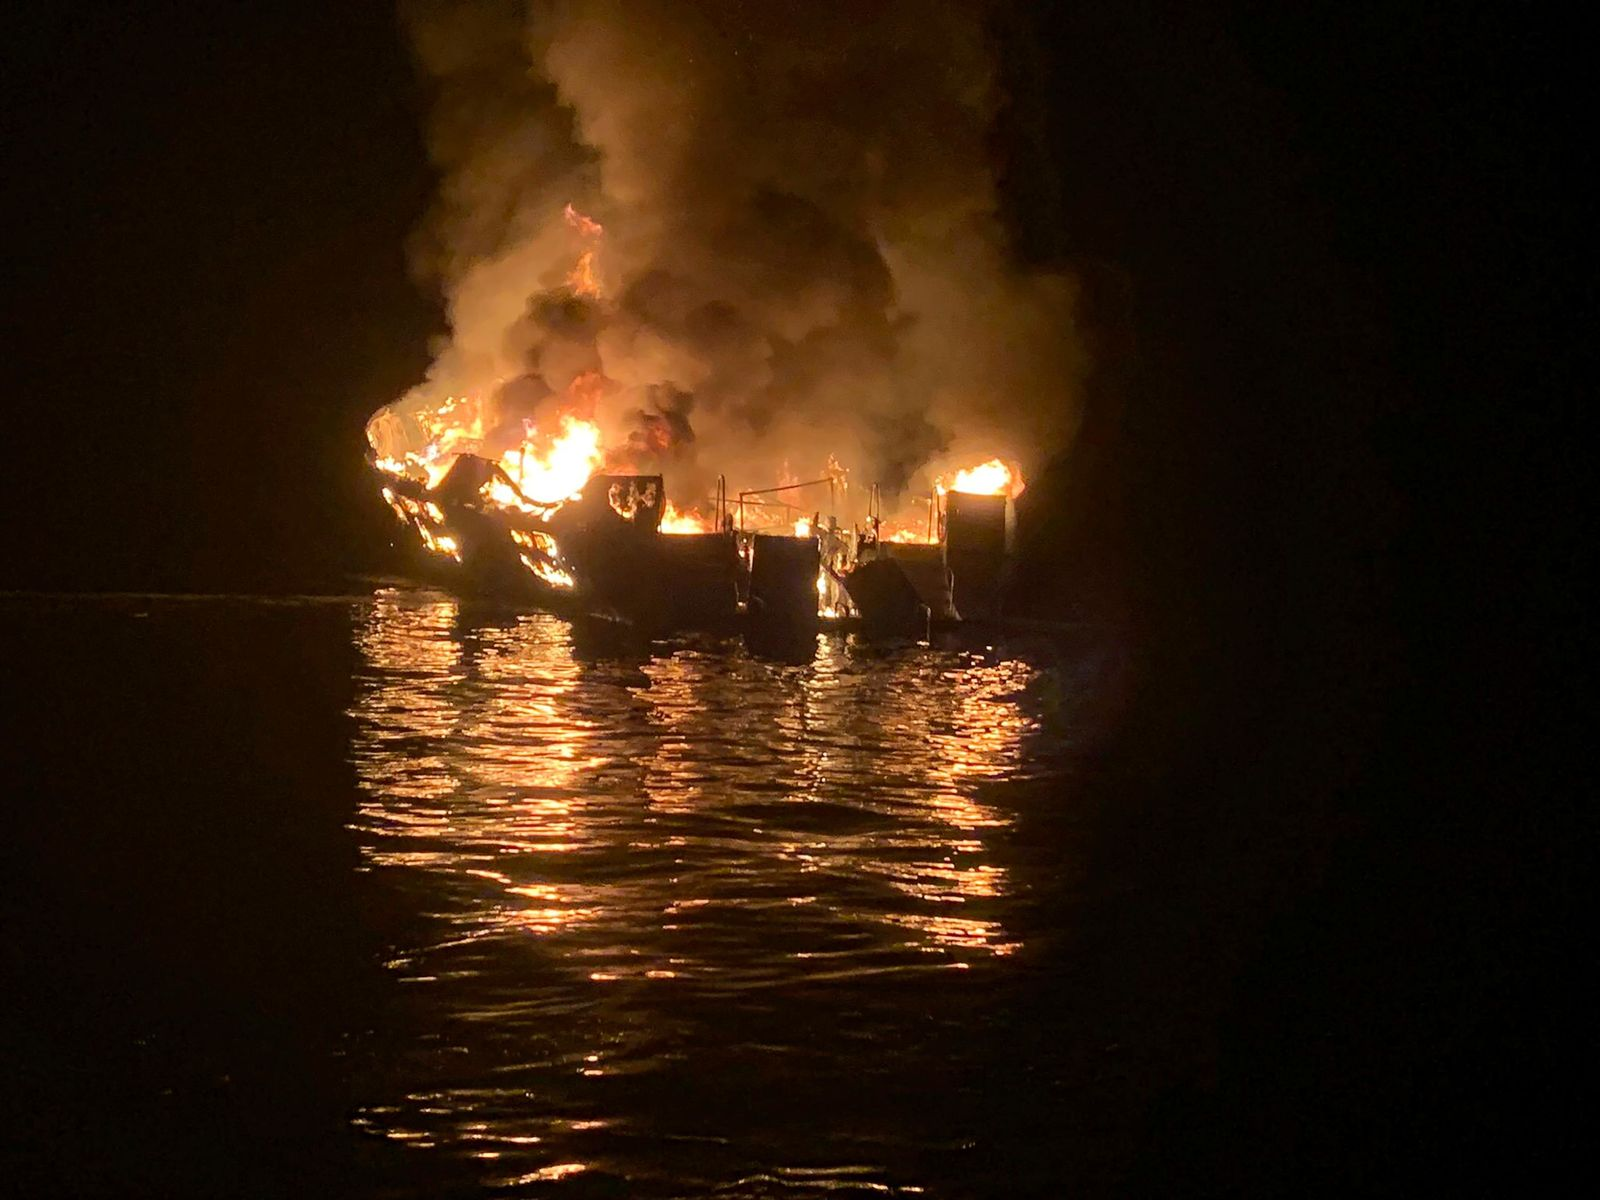 FILE - In this Sept. 2, 2019, file photo, provided by the Santa Barbara County Fire Department, a dive boat is engulfed in flames after a deadly fire broke out aboard the commercial scuba diving vessel off the Southern California Coast. (Santa Barbara County Fire Department via AP, File)